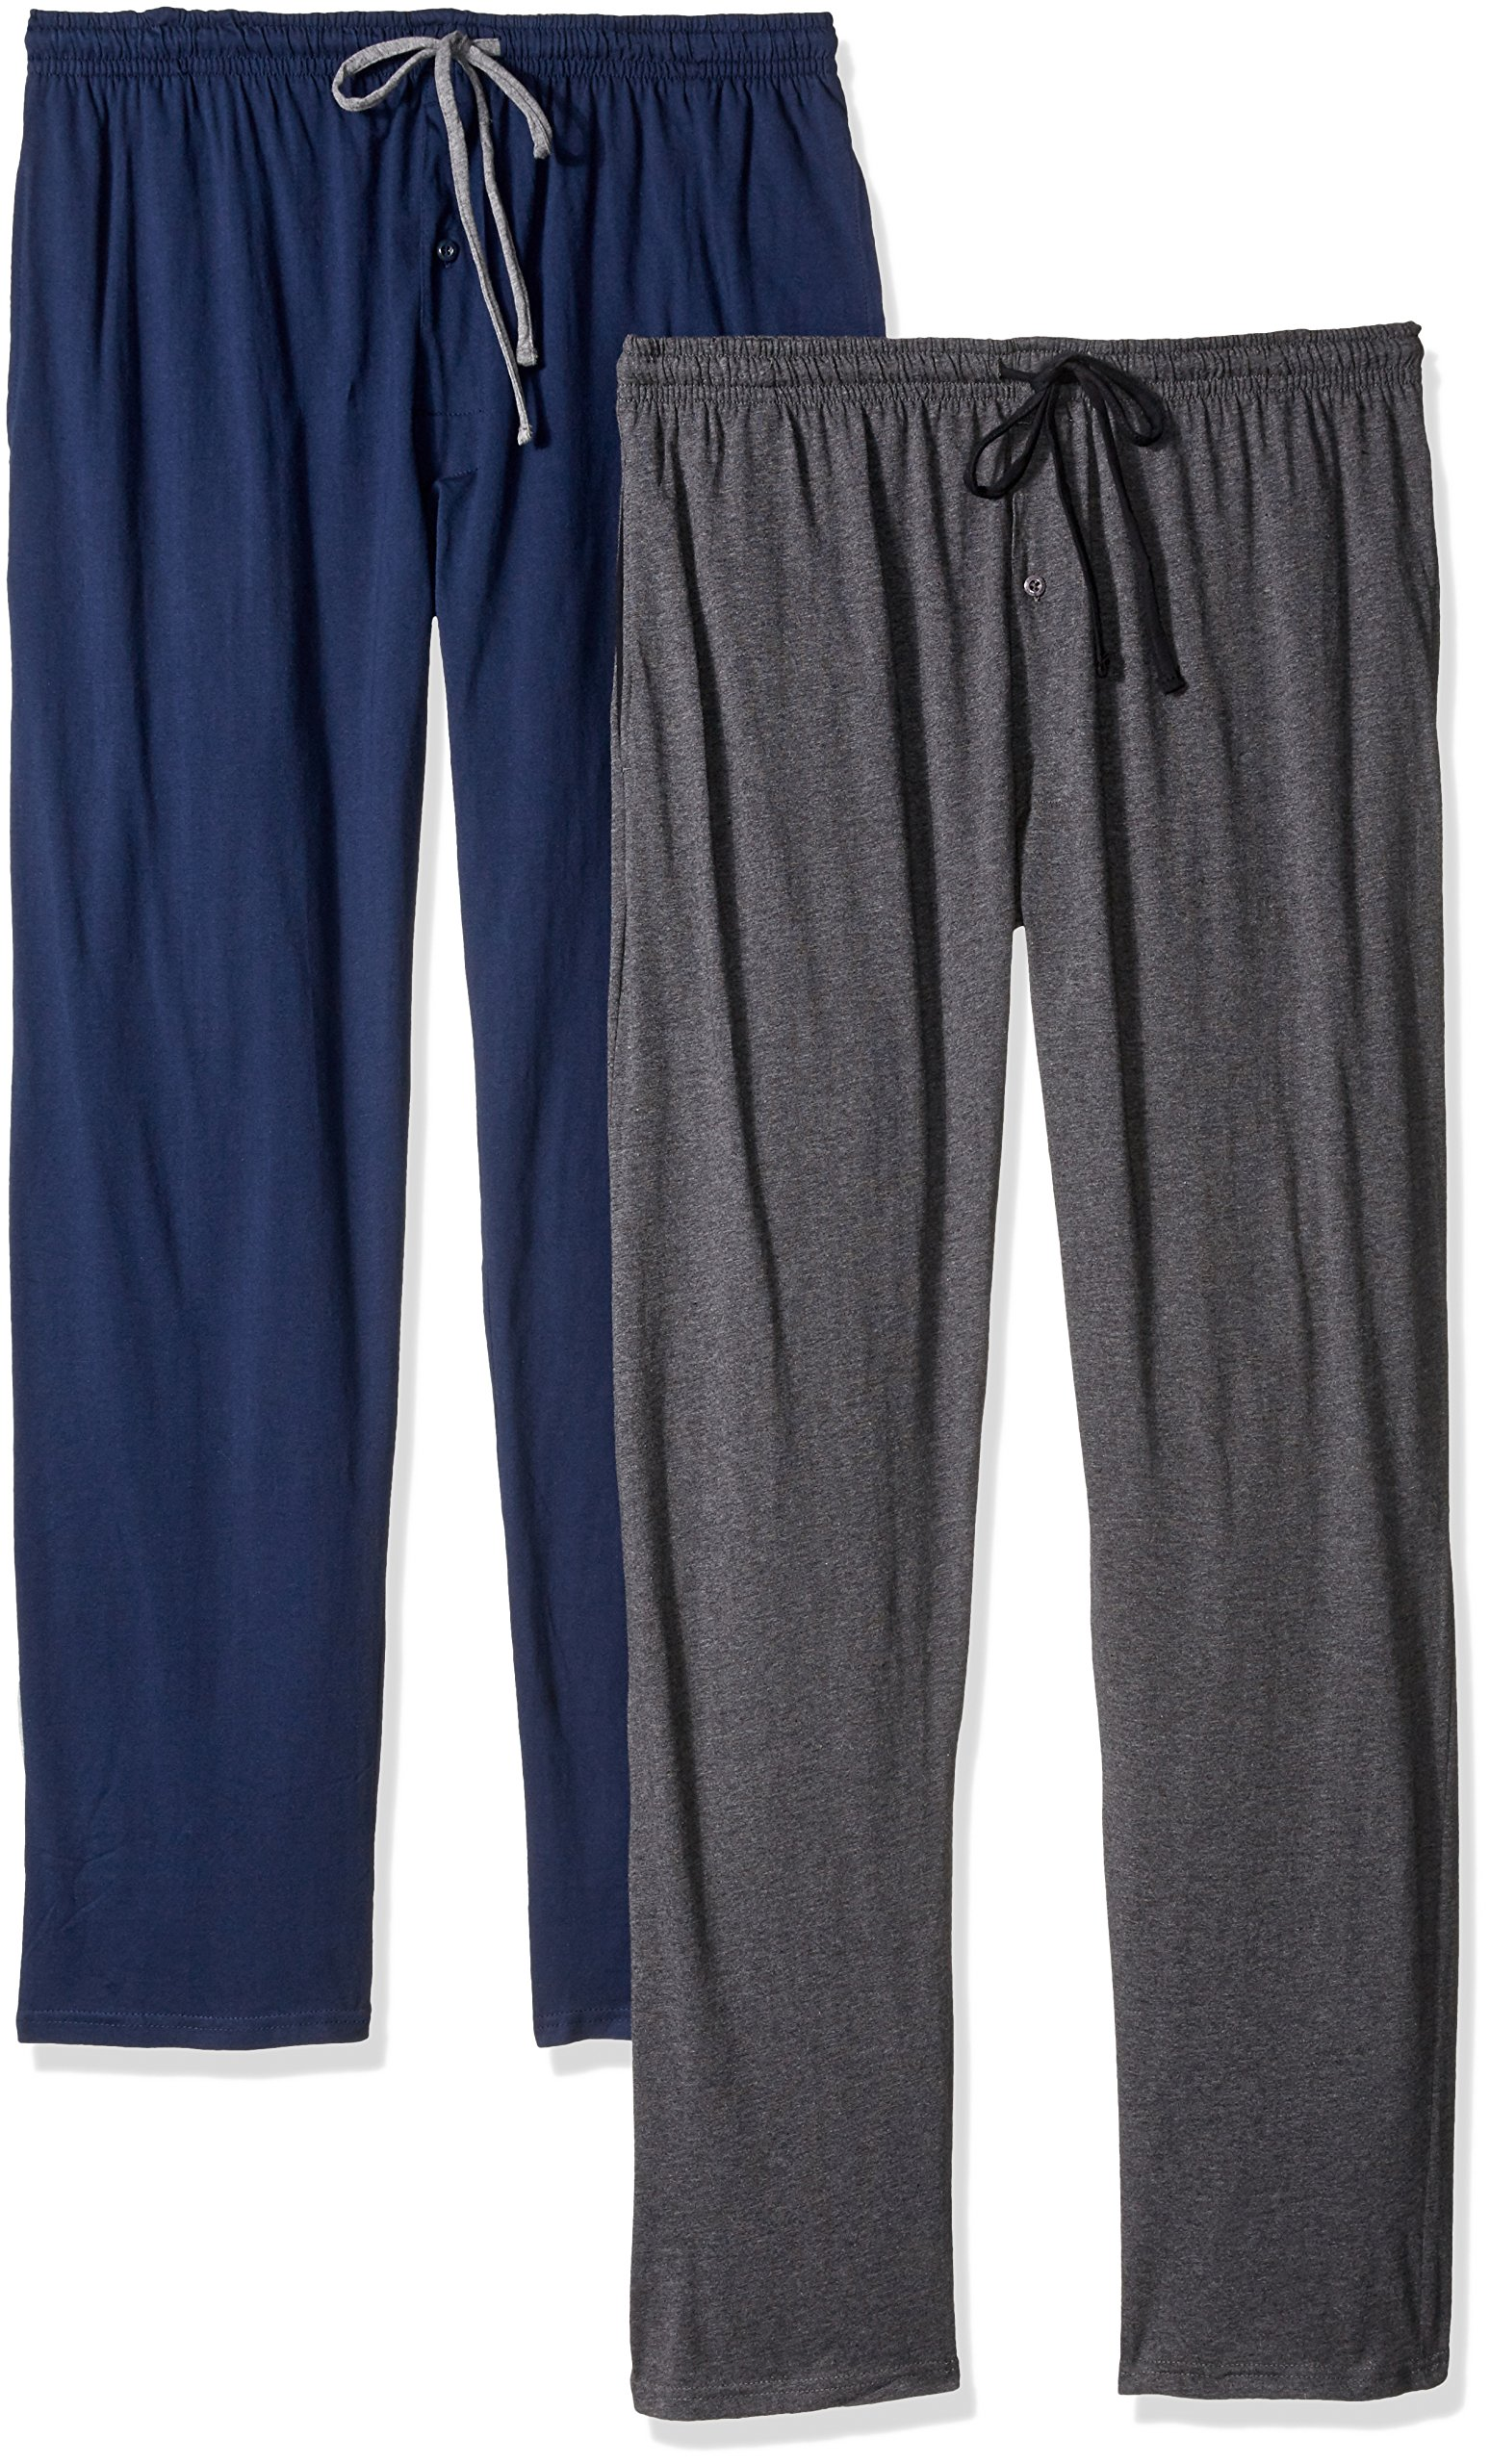 Hanes Men's Solid Knit Jersey Pajama Pant (Pack of Two Pairs), Navy/Grey, Large